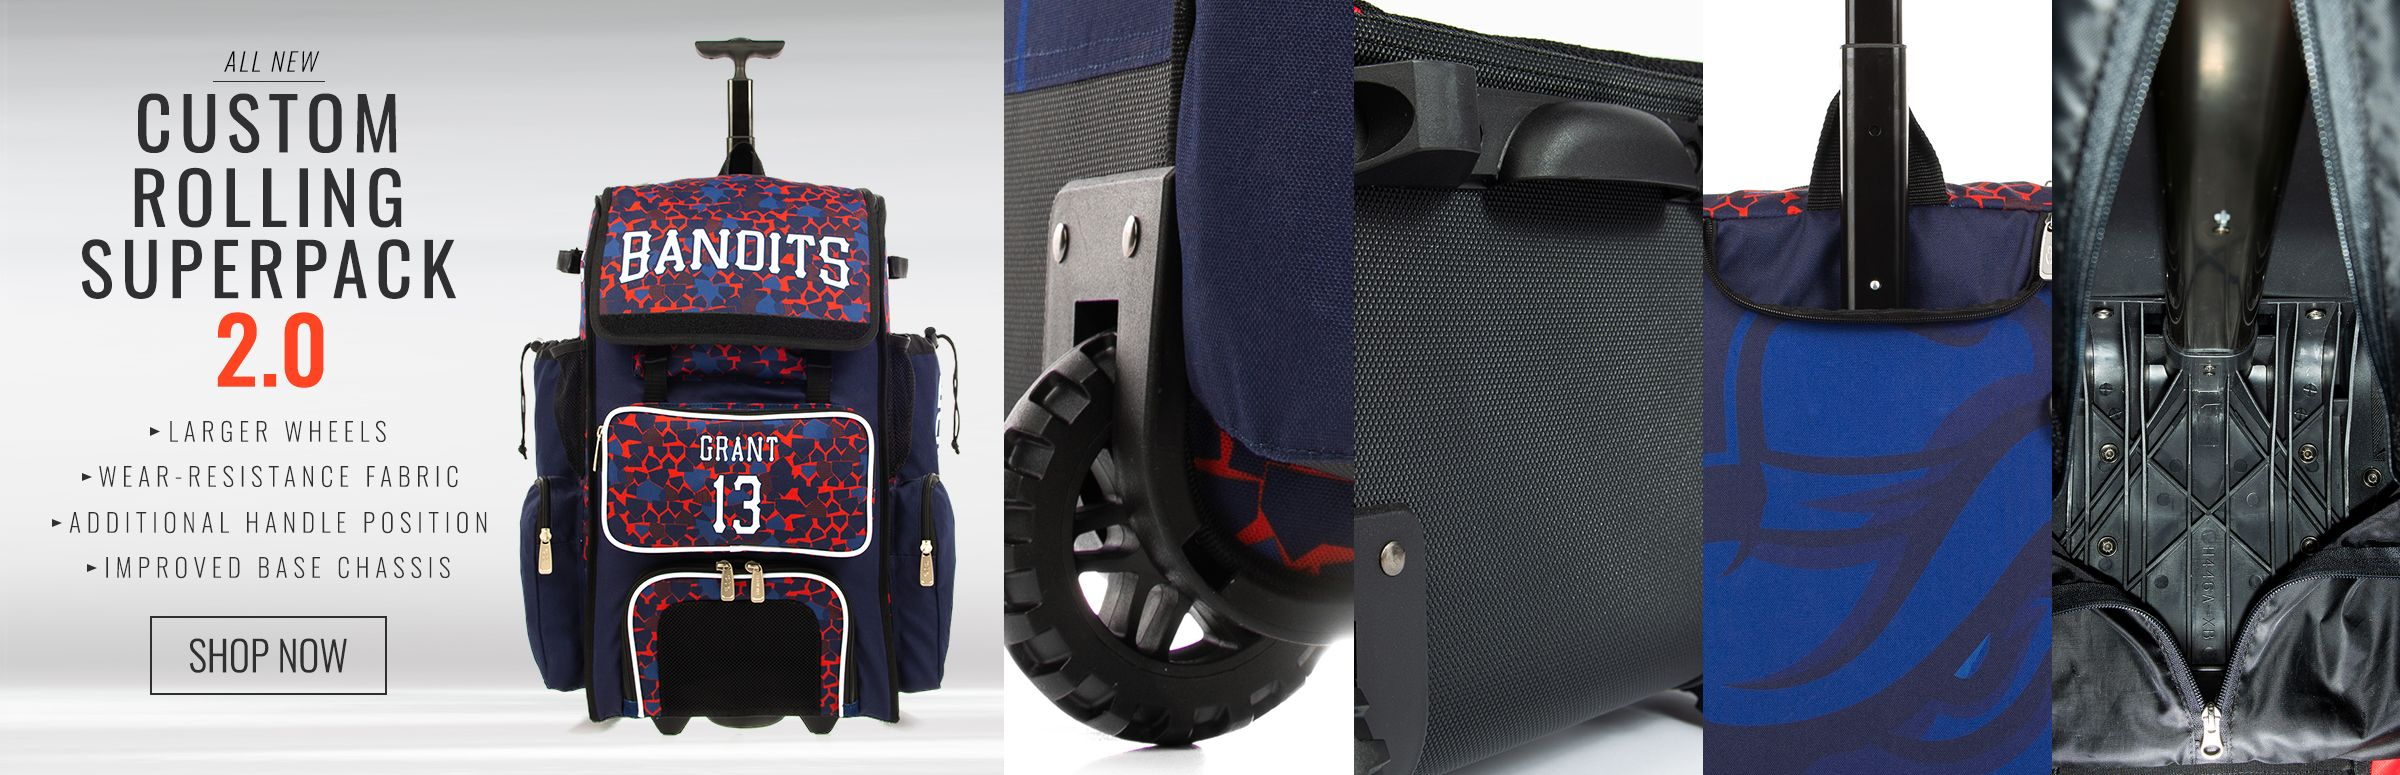 Custom Rolling Superpack 2.0 Bat Bag